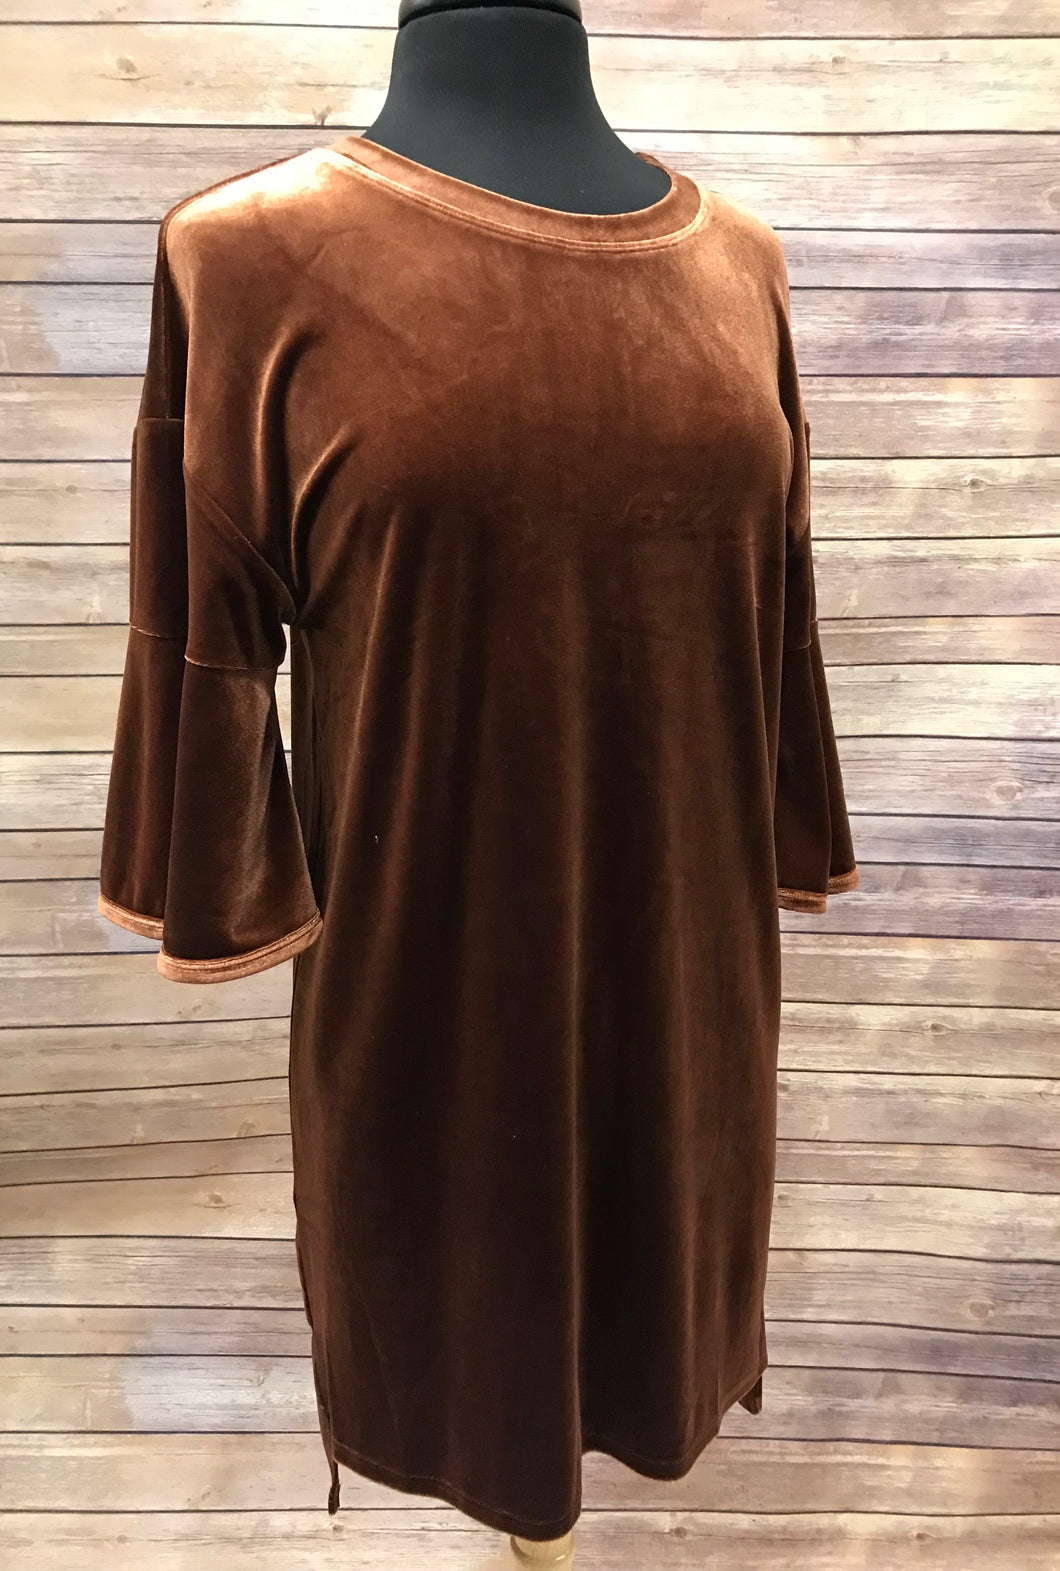 SALE - Very J Velour Dress